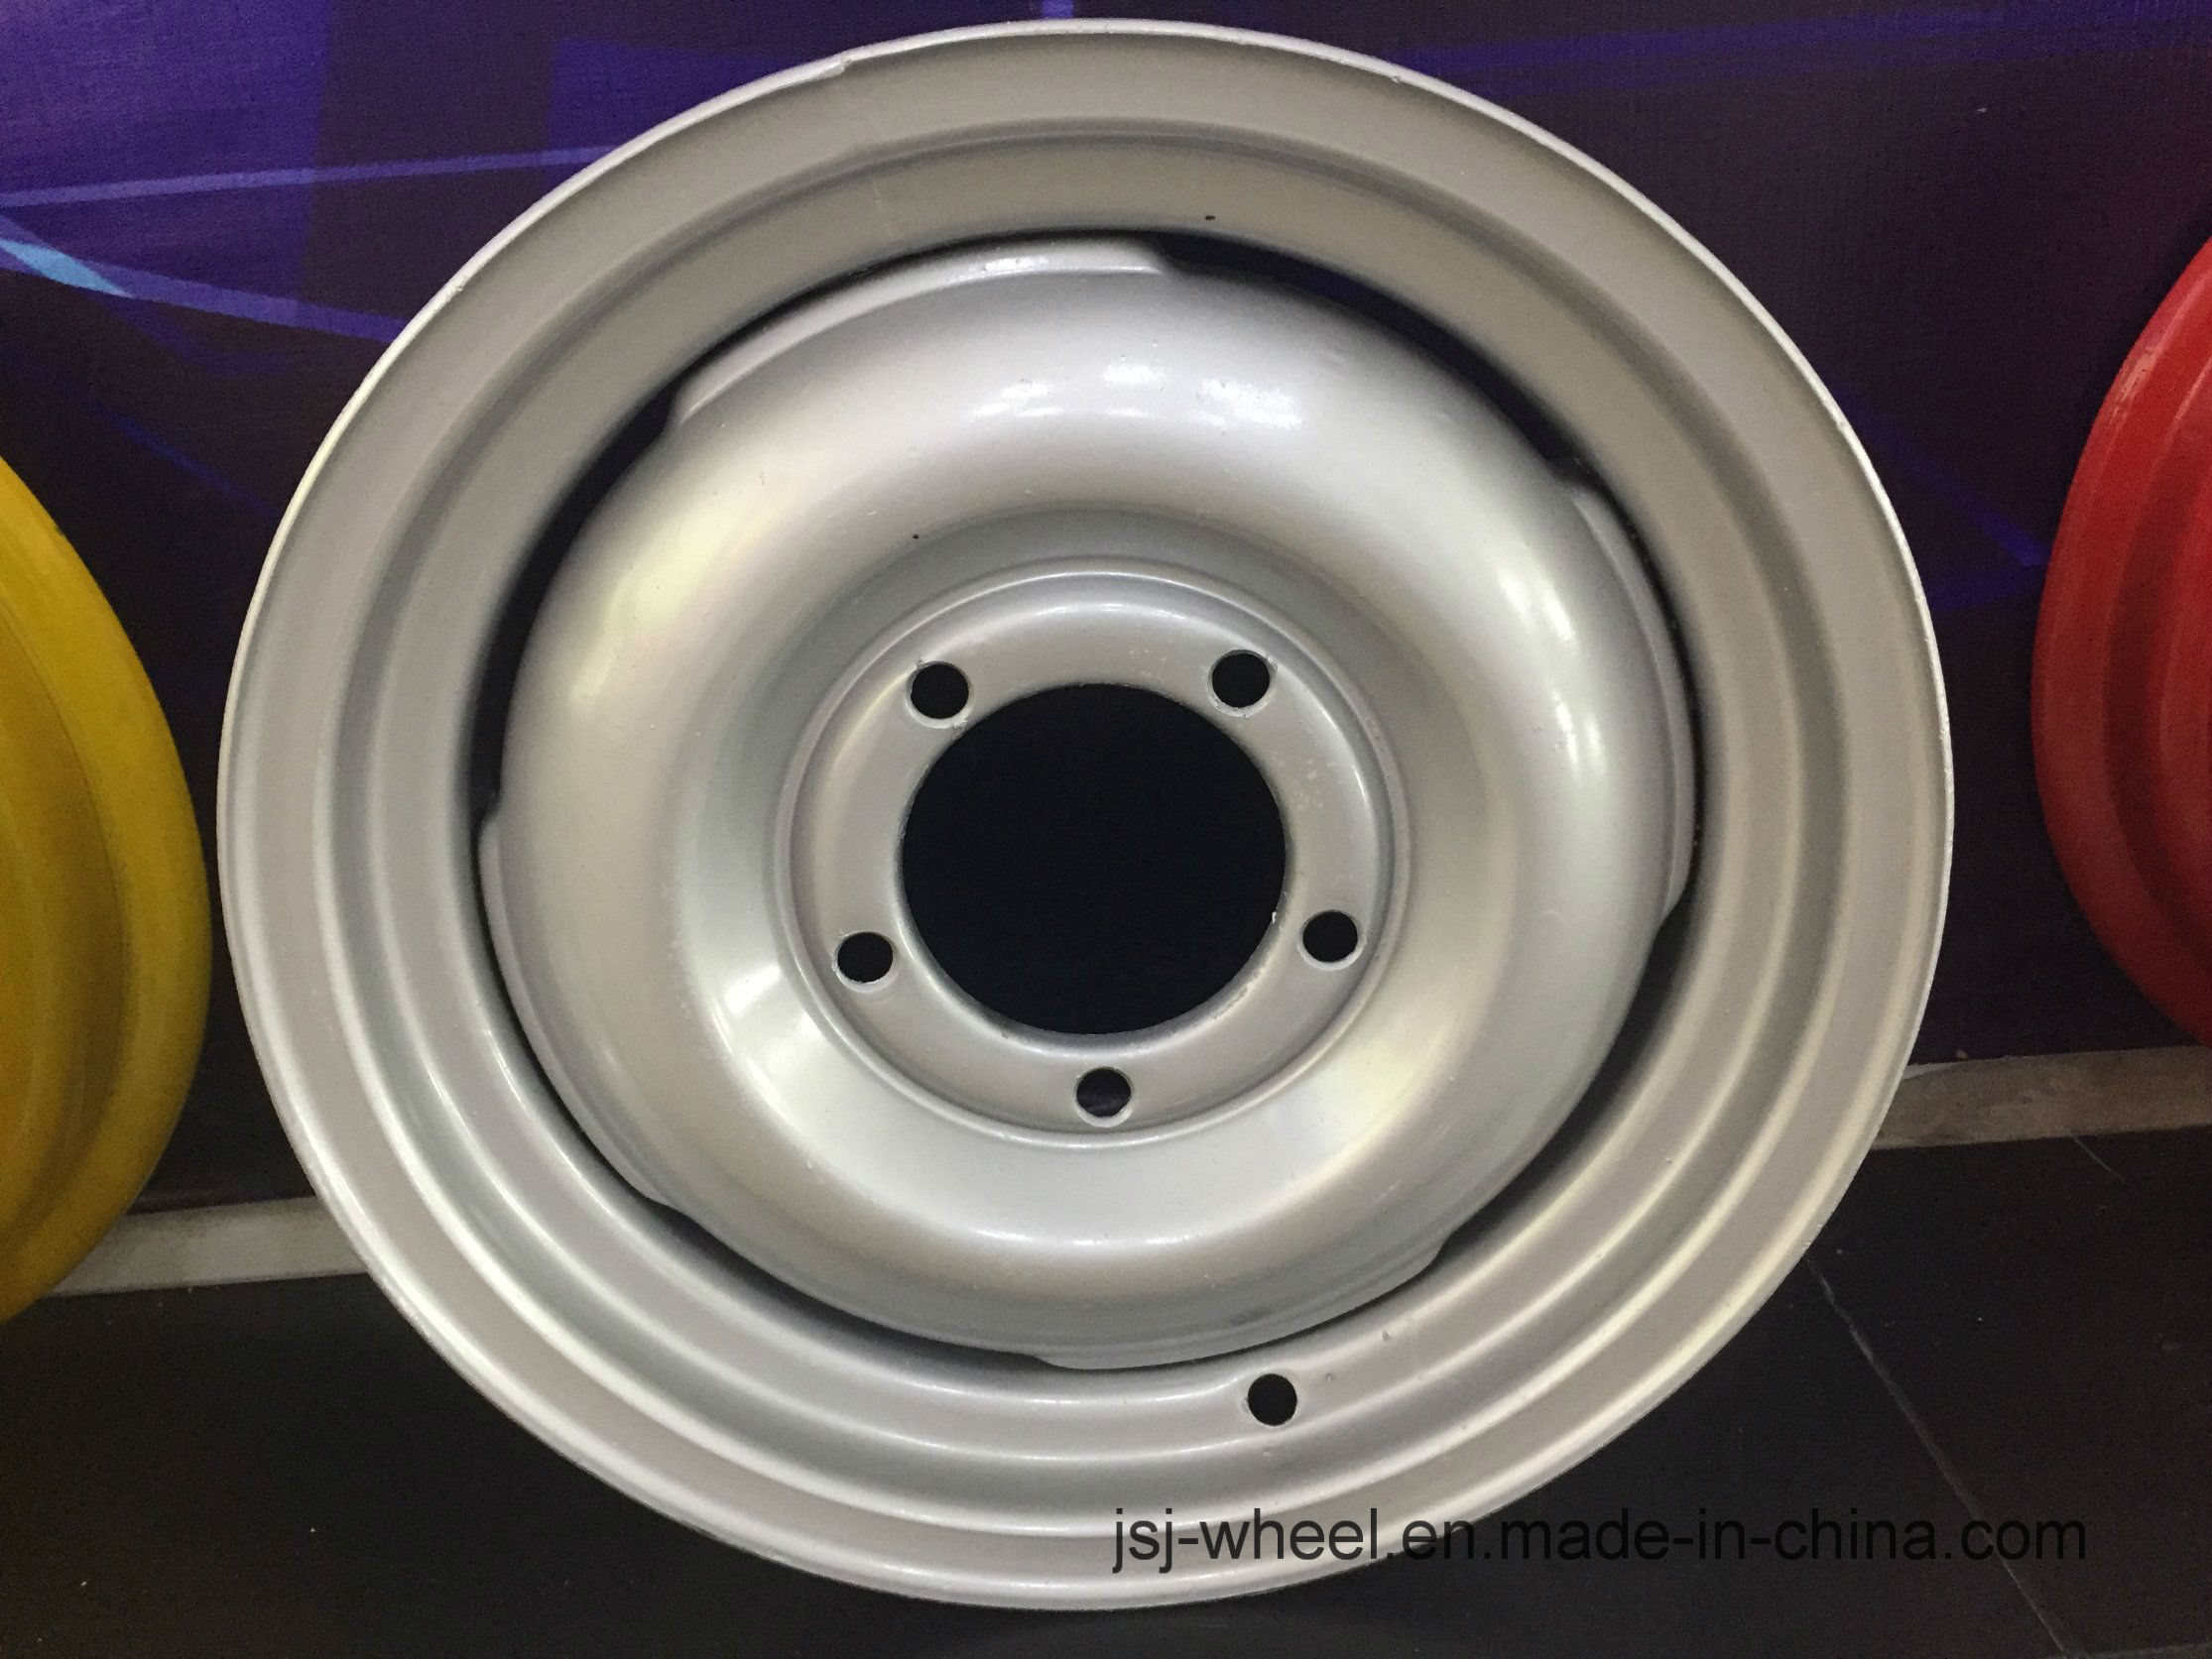 Wheel Rims for Tractor/Harvest/Machineshop Truck/Irrigation System-14